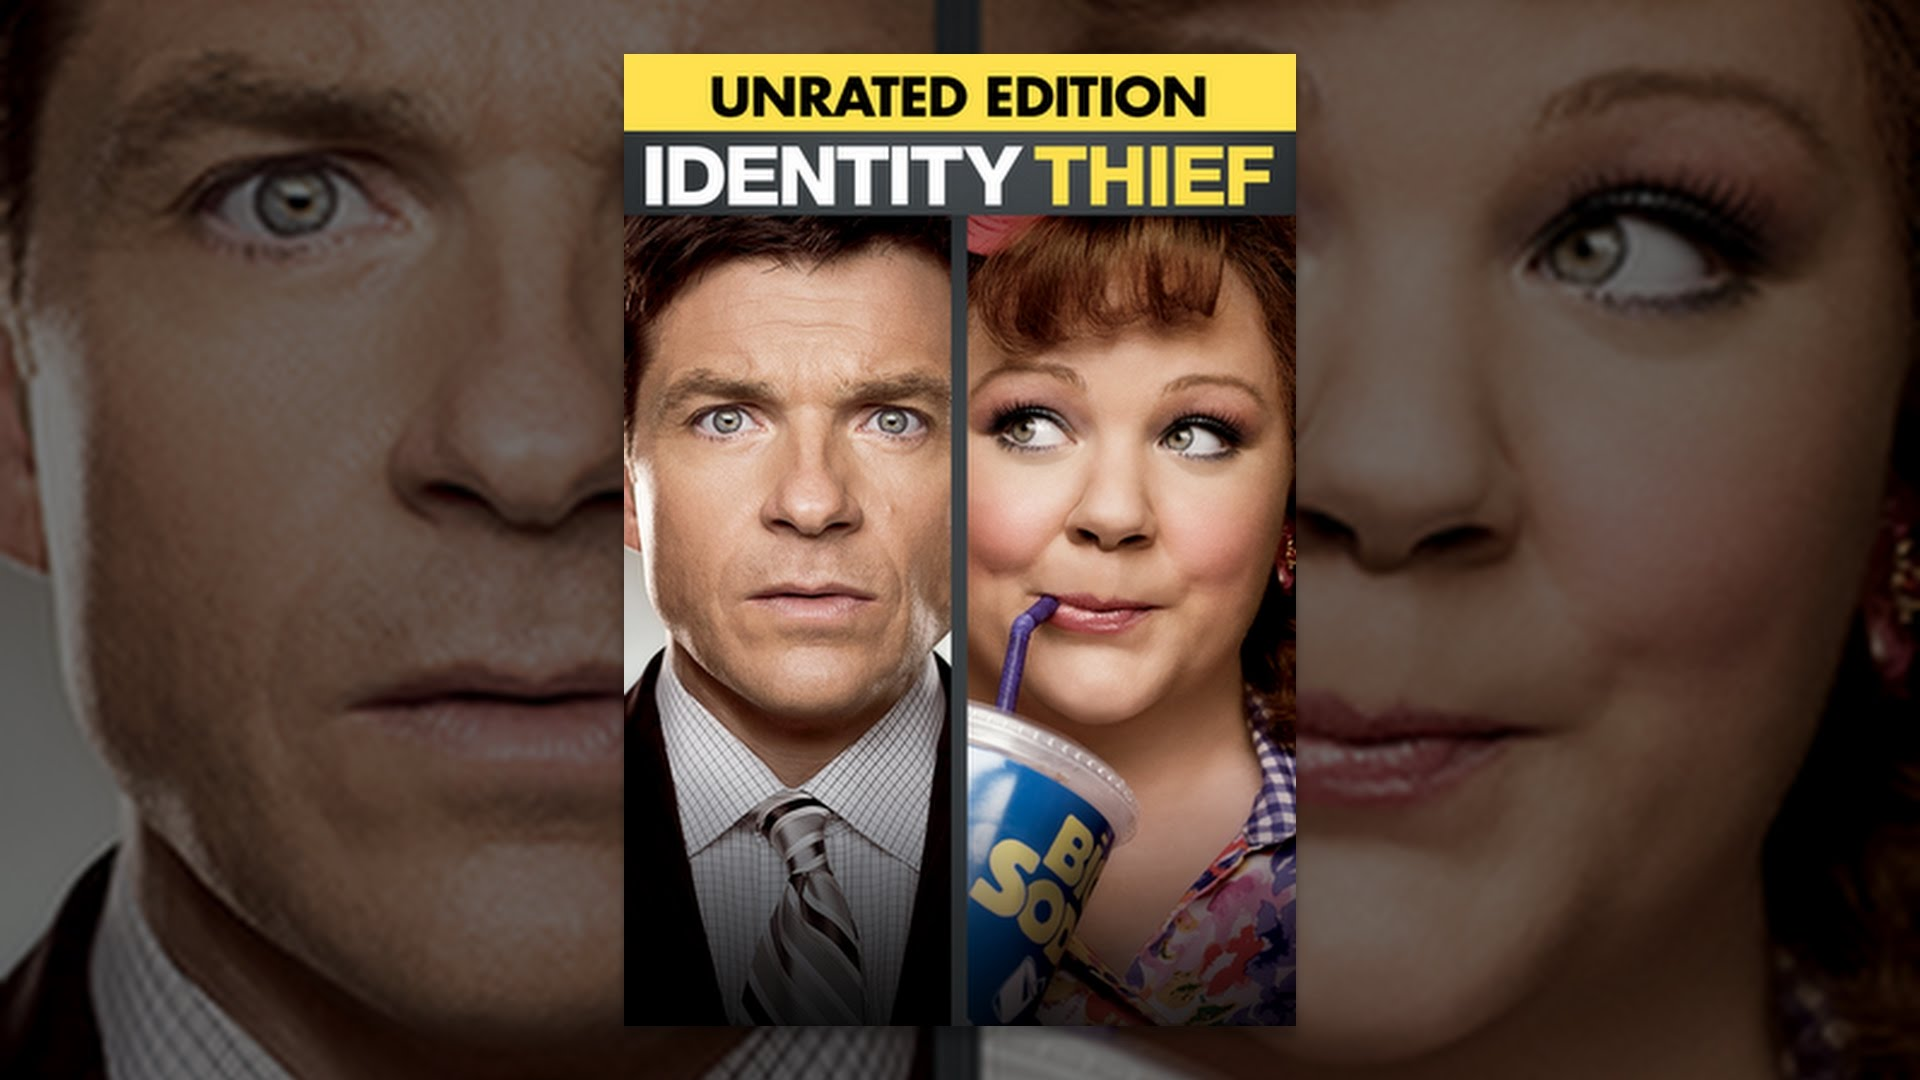 Download Identity Thief - Unrated Edition